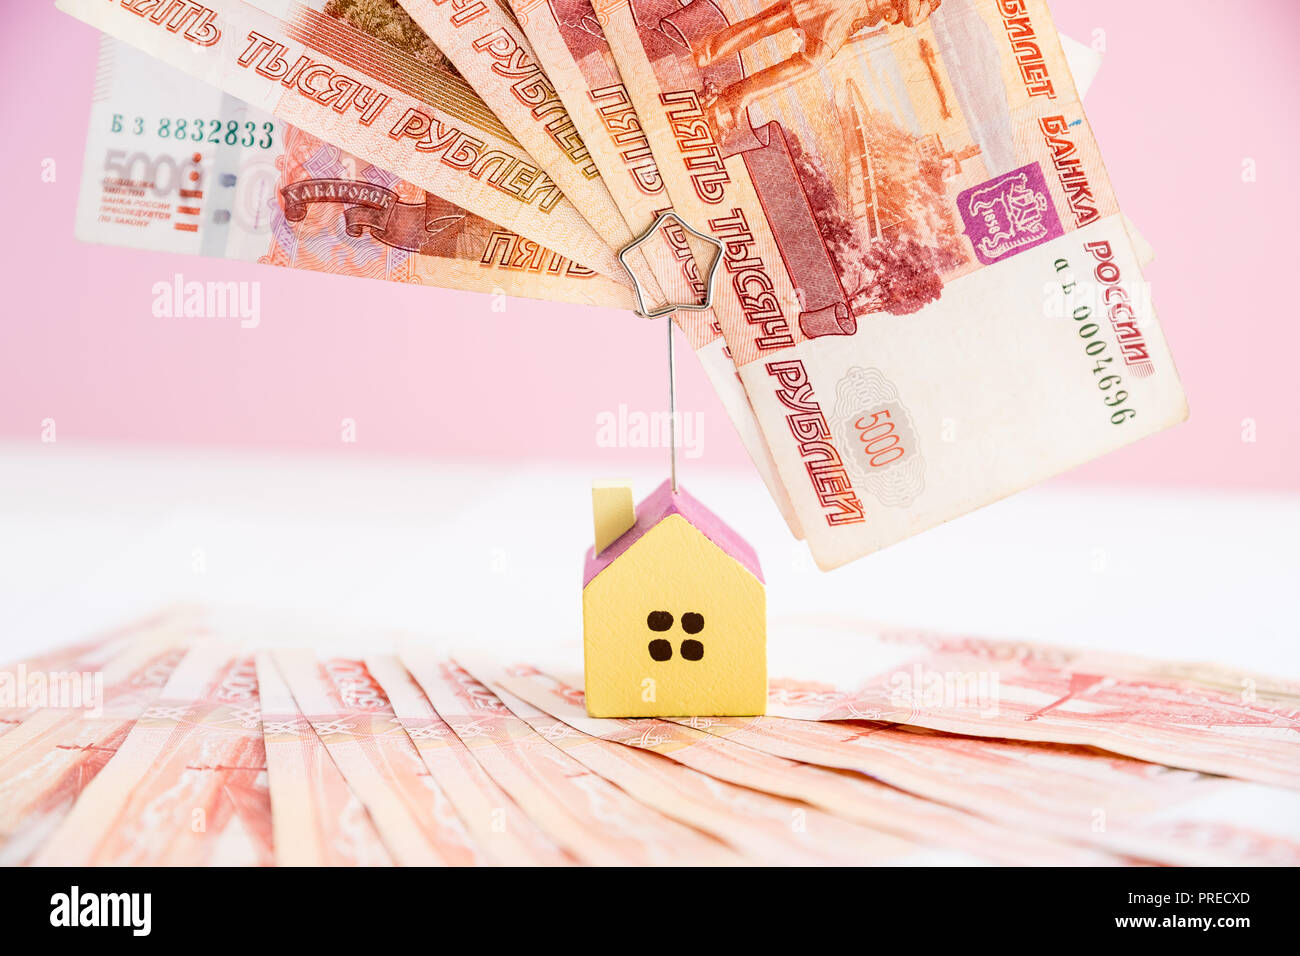 Model of the house standing on five thousand banknotes.Rental estate.Sale property template.Model of wooden house with money. House building, loan,real estate, cost of housing or buying a new home concept. - Stock Image